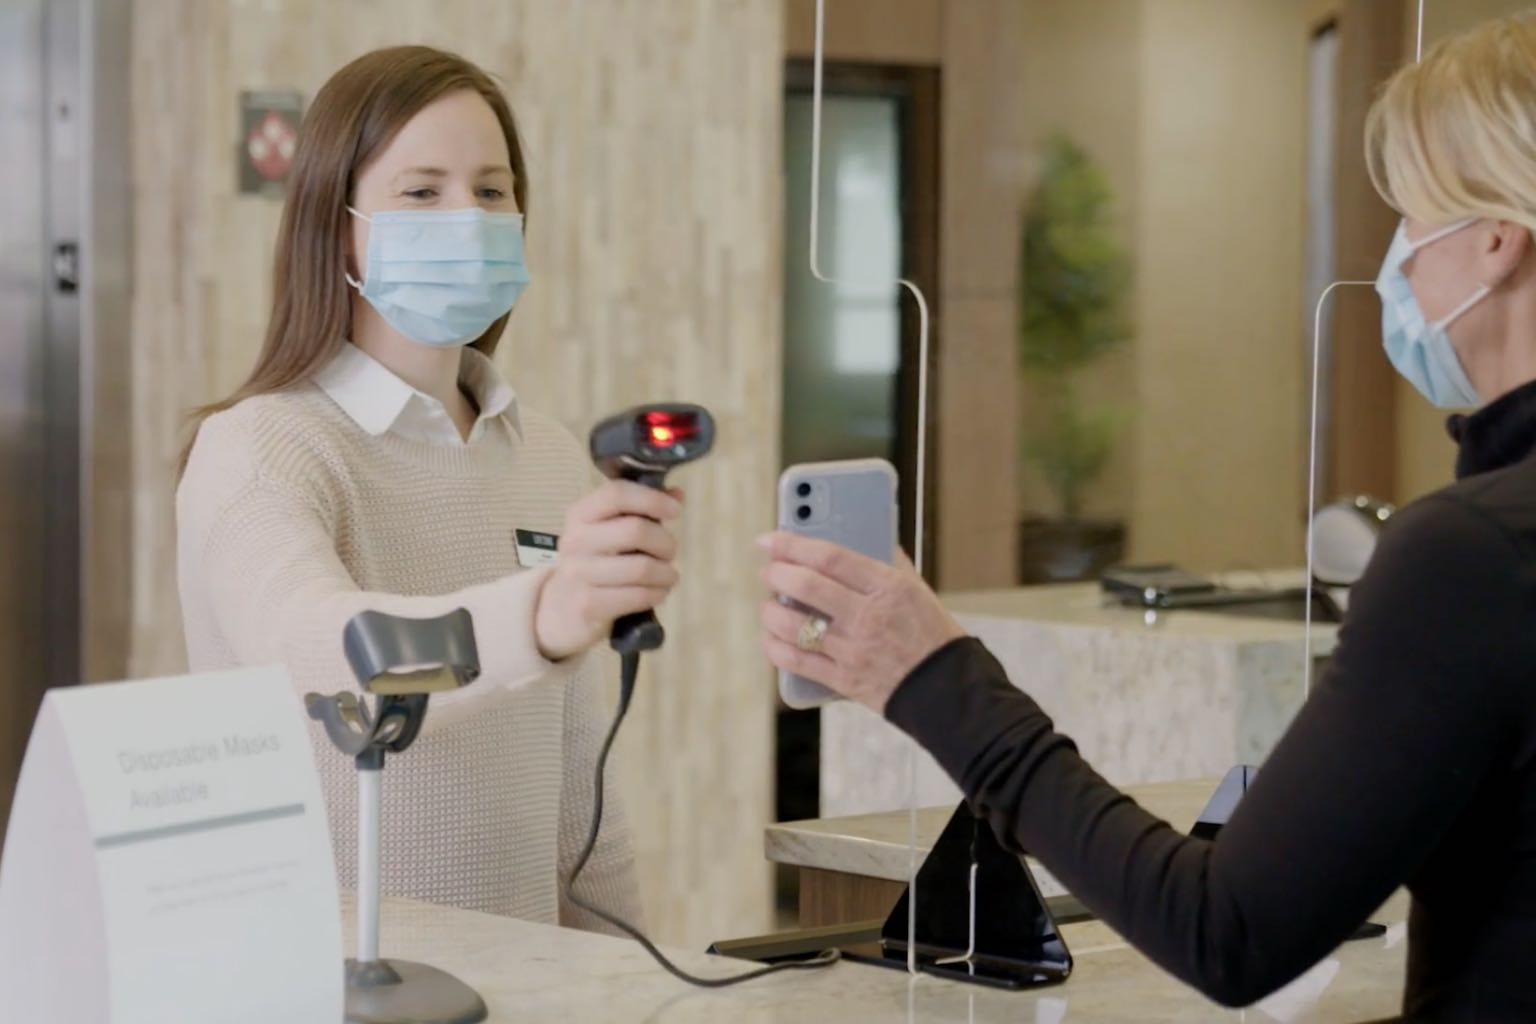 a life time employee wearing a mask scans a members phone at the front desk